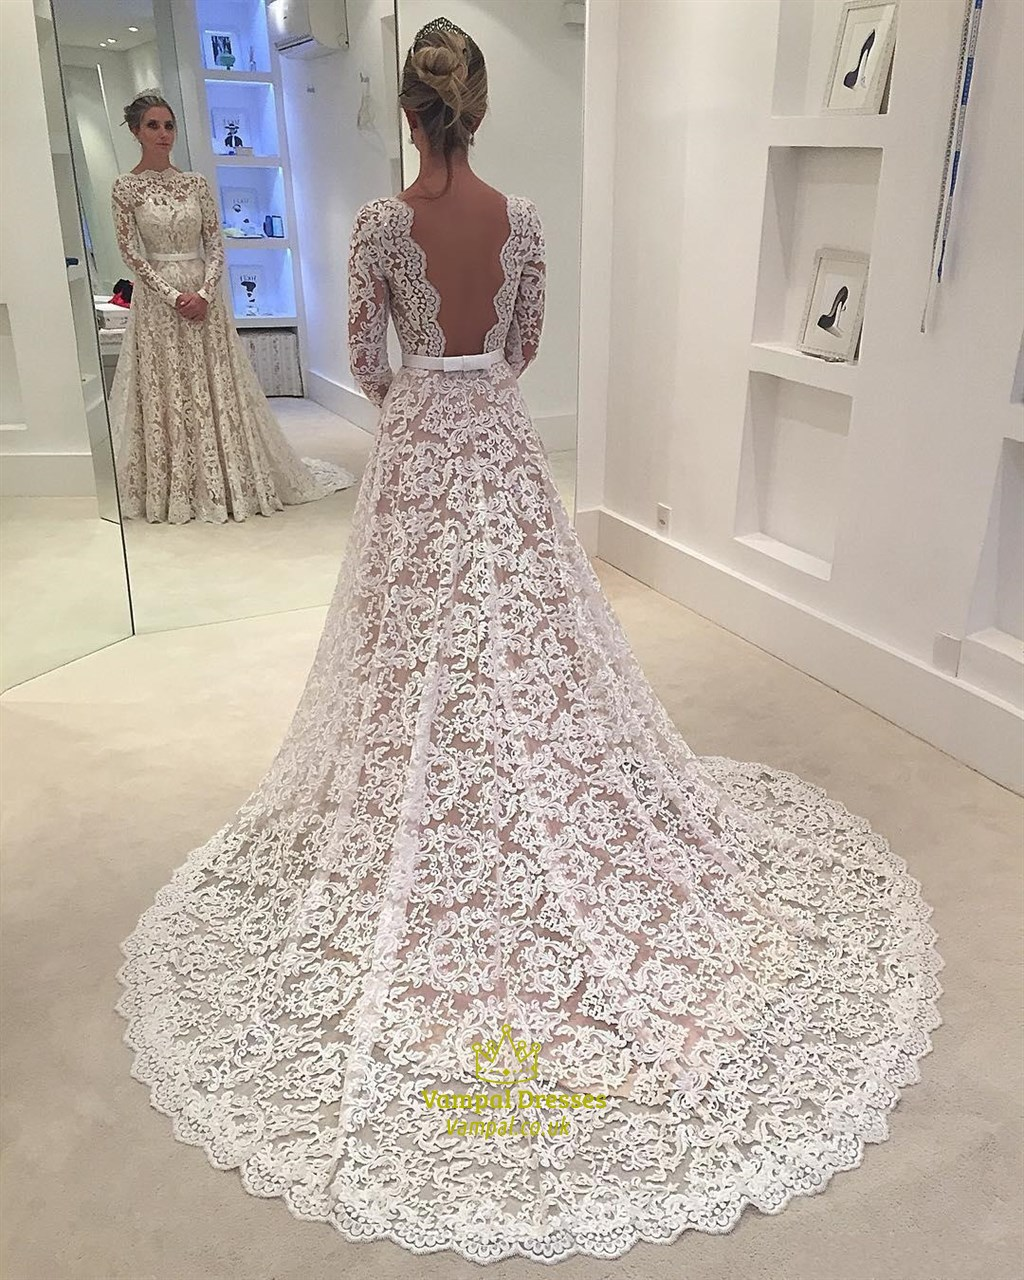 Elegant illusion lace overlay long sleeve wedding dress for Lace wedding dress overlay